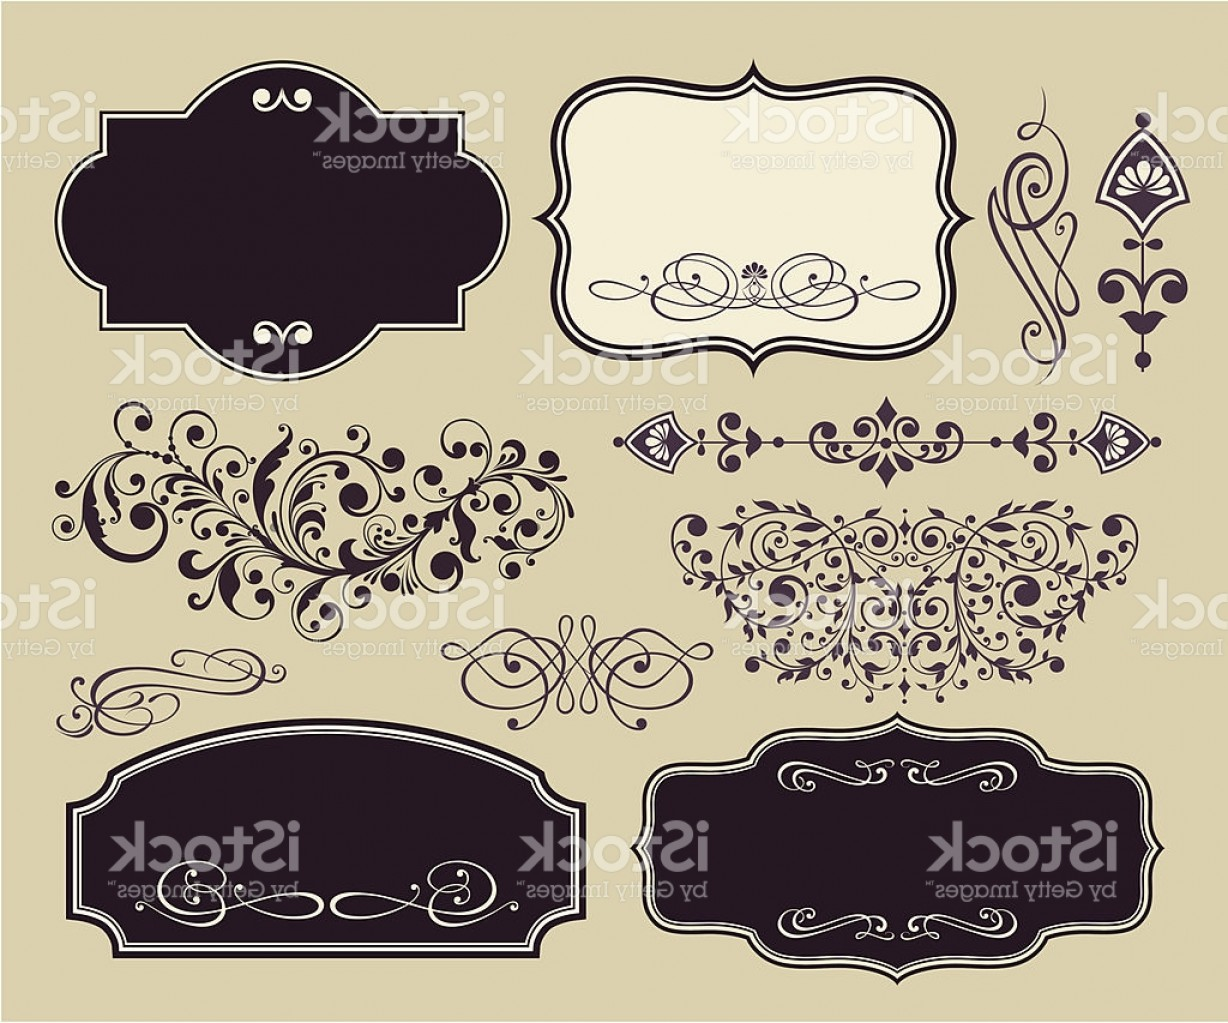 Sign Shapes Vector Art: Vector Set Of Vintage Shapes And Ornaments Gm